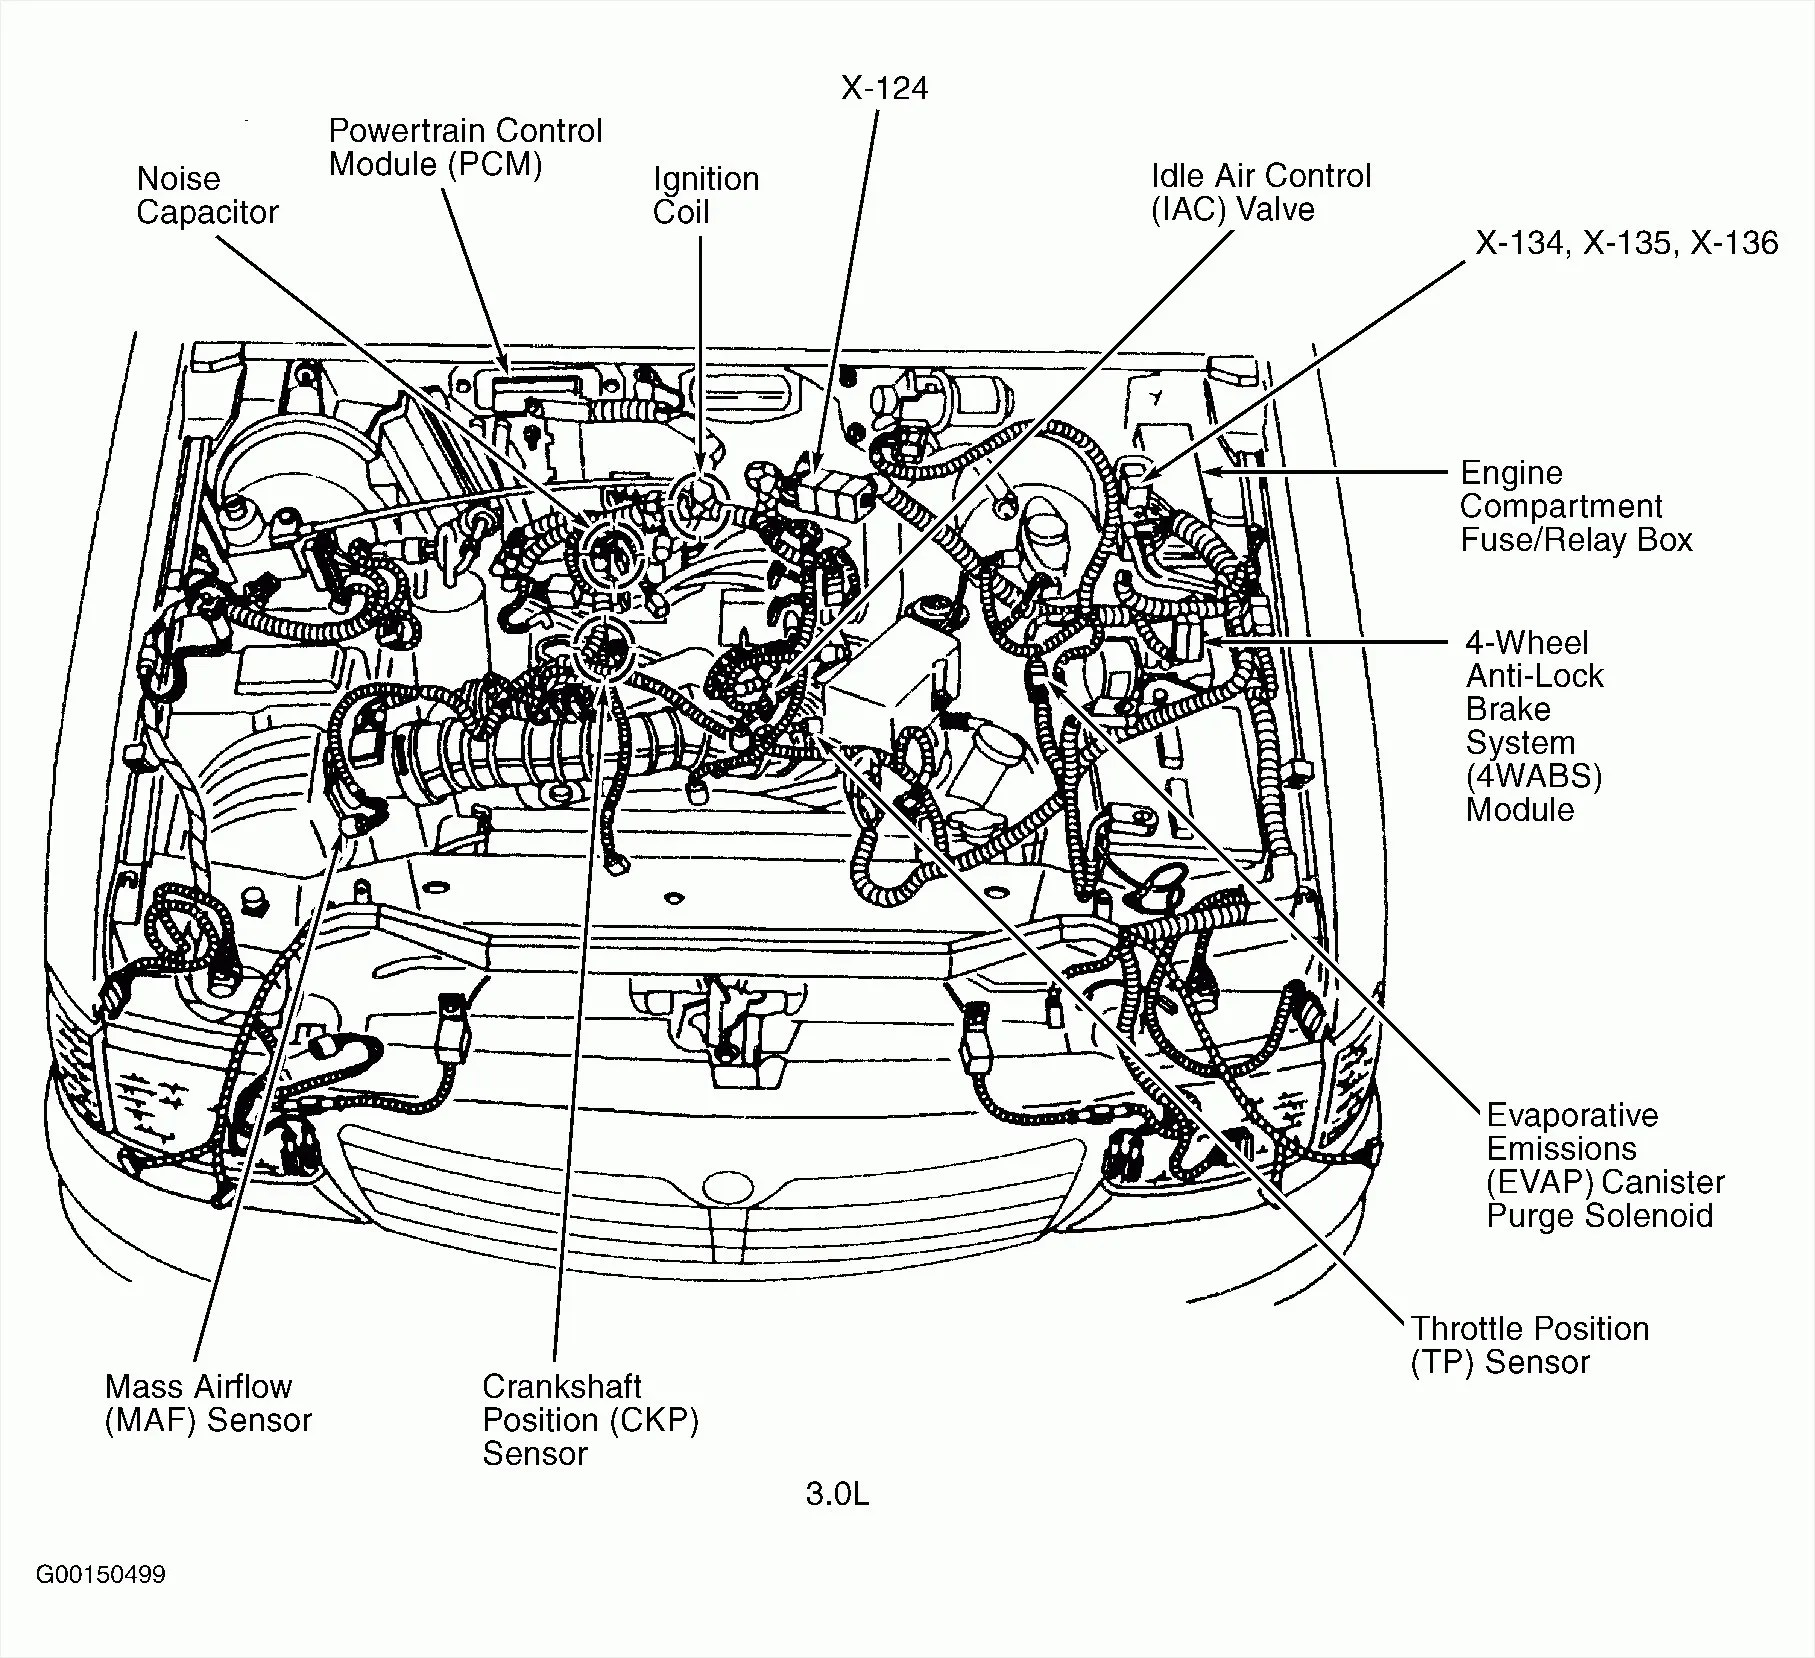 hight resolution of 3 8 liter dodge engine diagram wiring diagram sheet dodge 2 4 engine diagram